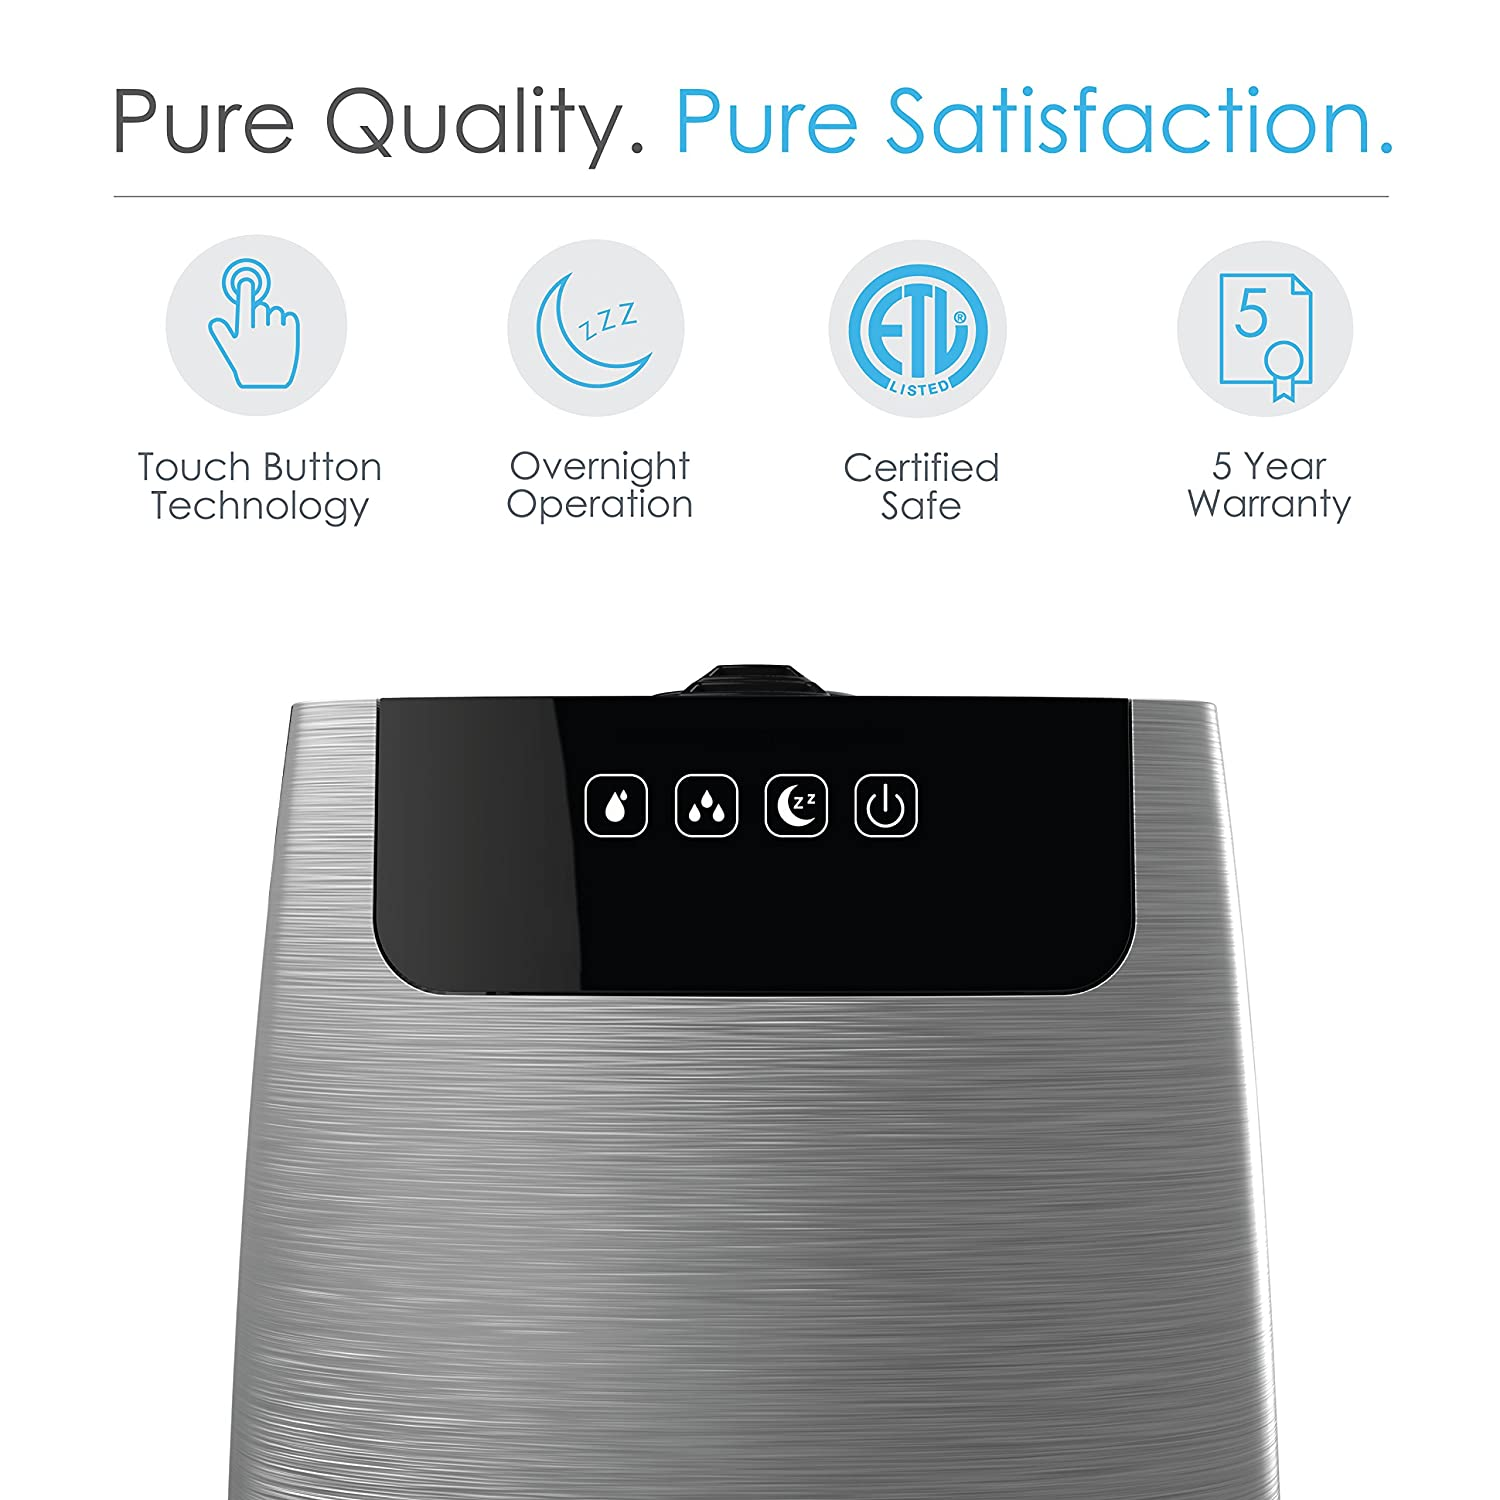 Pure Enrichment HumeXL Ultrasonic Cool Mist Humidifier – Large, Easy-to-Clean 5-Liter 1.3 Gallon Water Tank, Touch-Button Control, High Low Mist, 2 Independent 360 Mist Nozzles and Night Mode